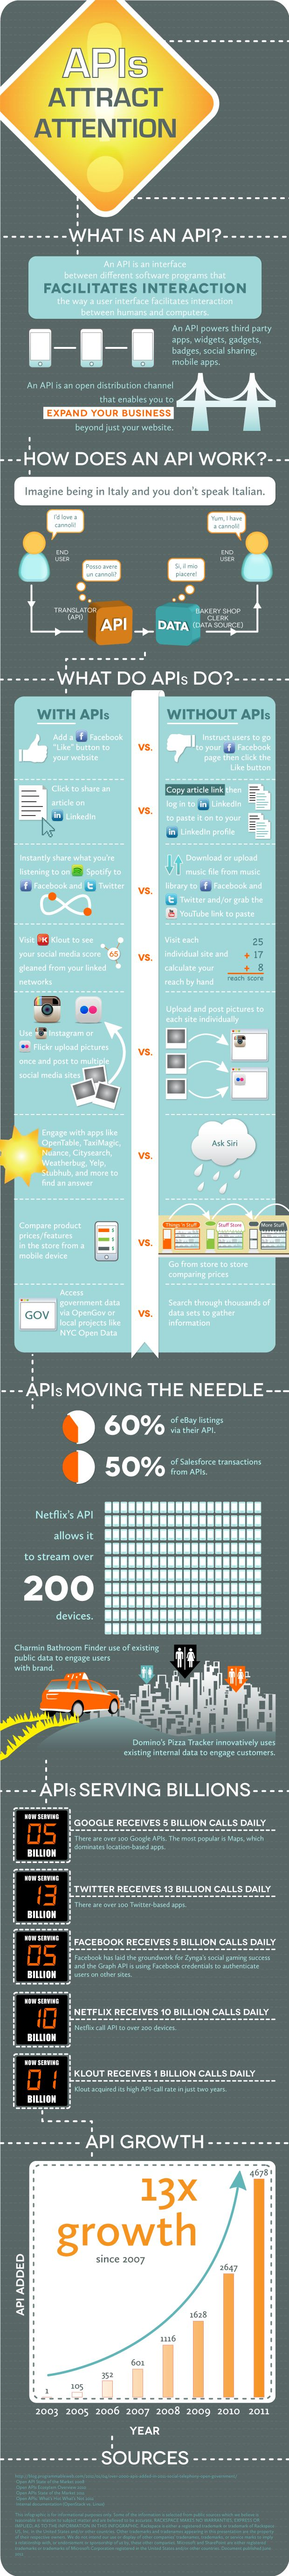 Was ist eine API -- Infographic describing an Application Programming Interface